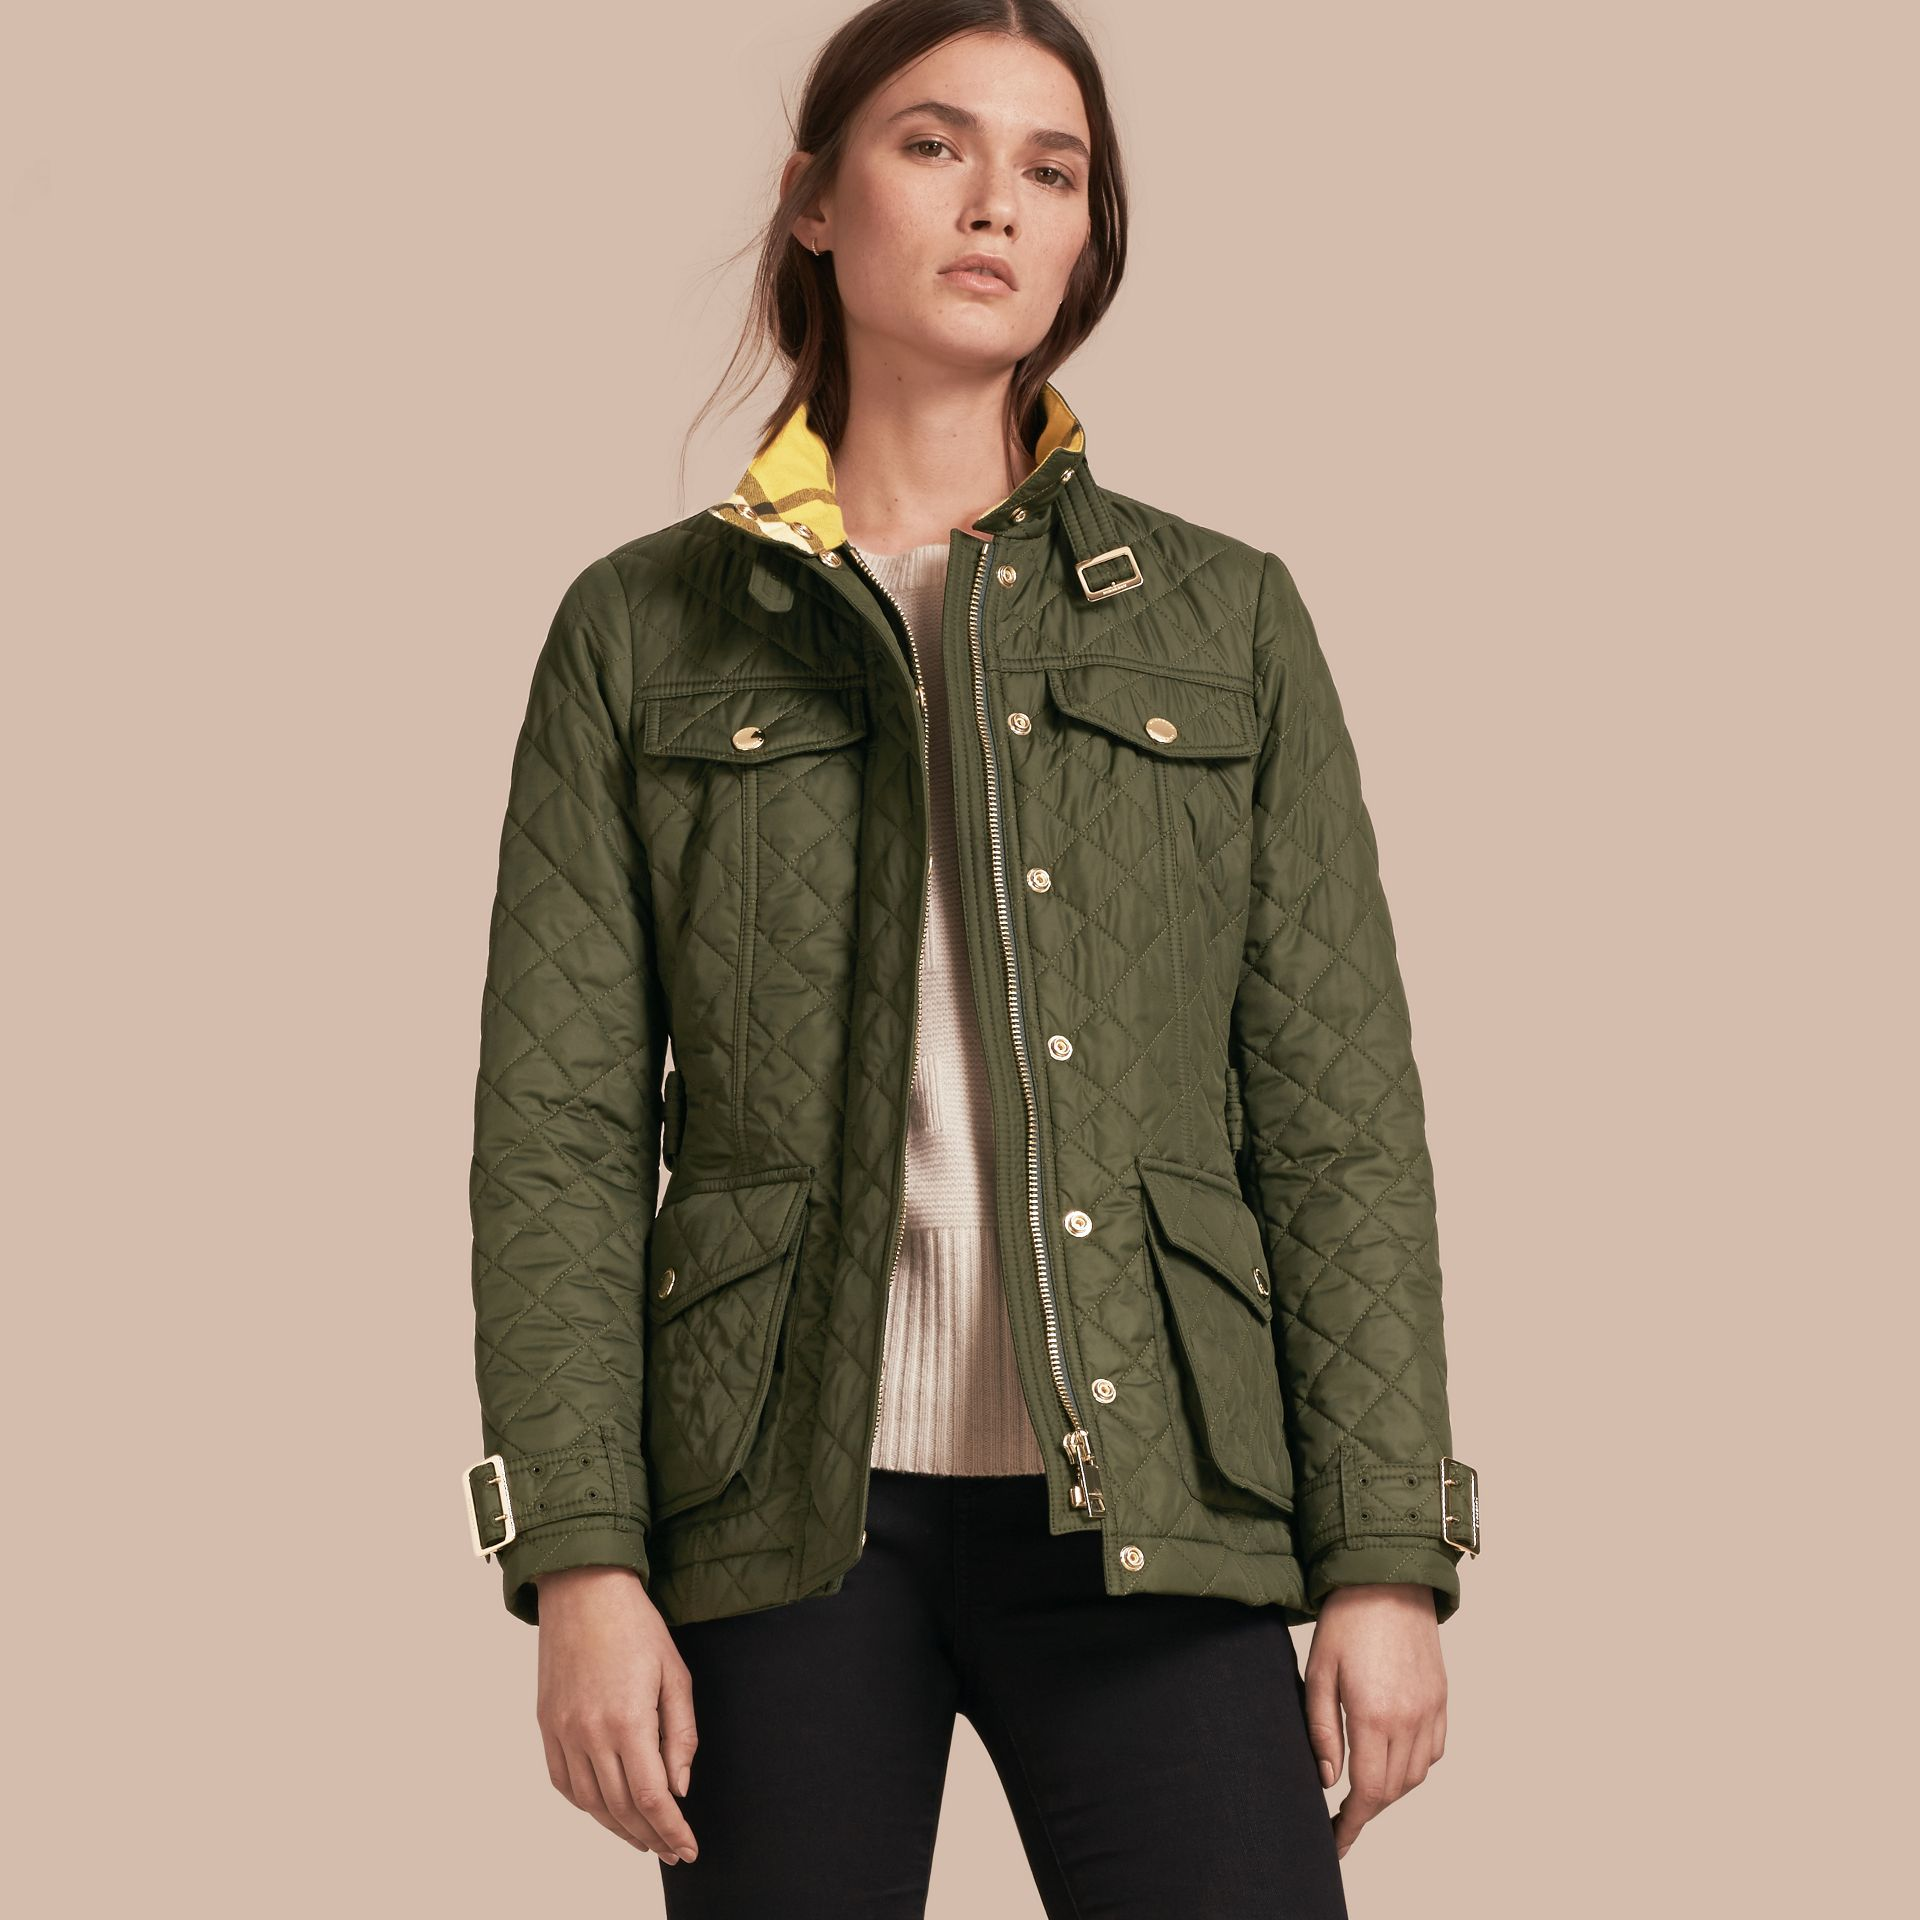 Buckle Detail Technical Field Jacket in Military Green - gallery image 1